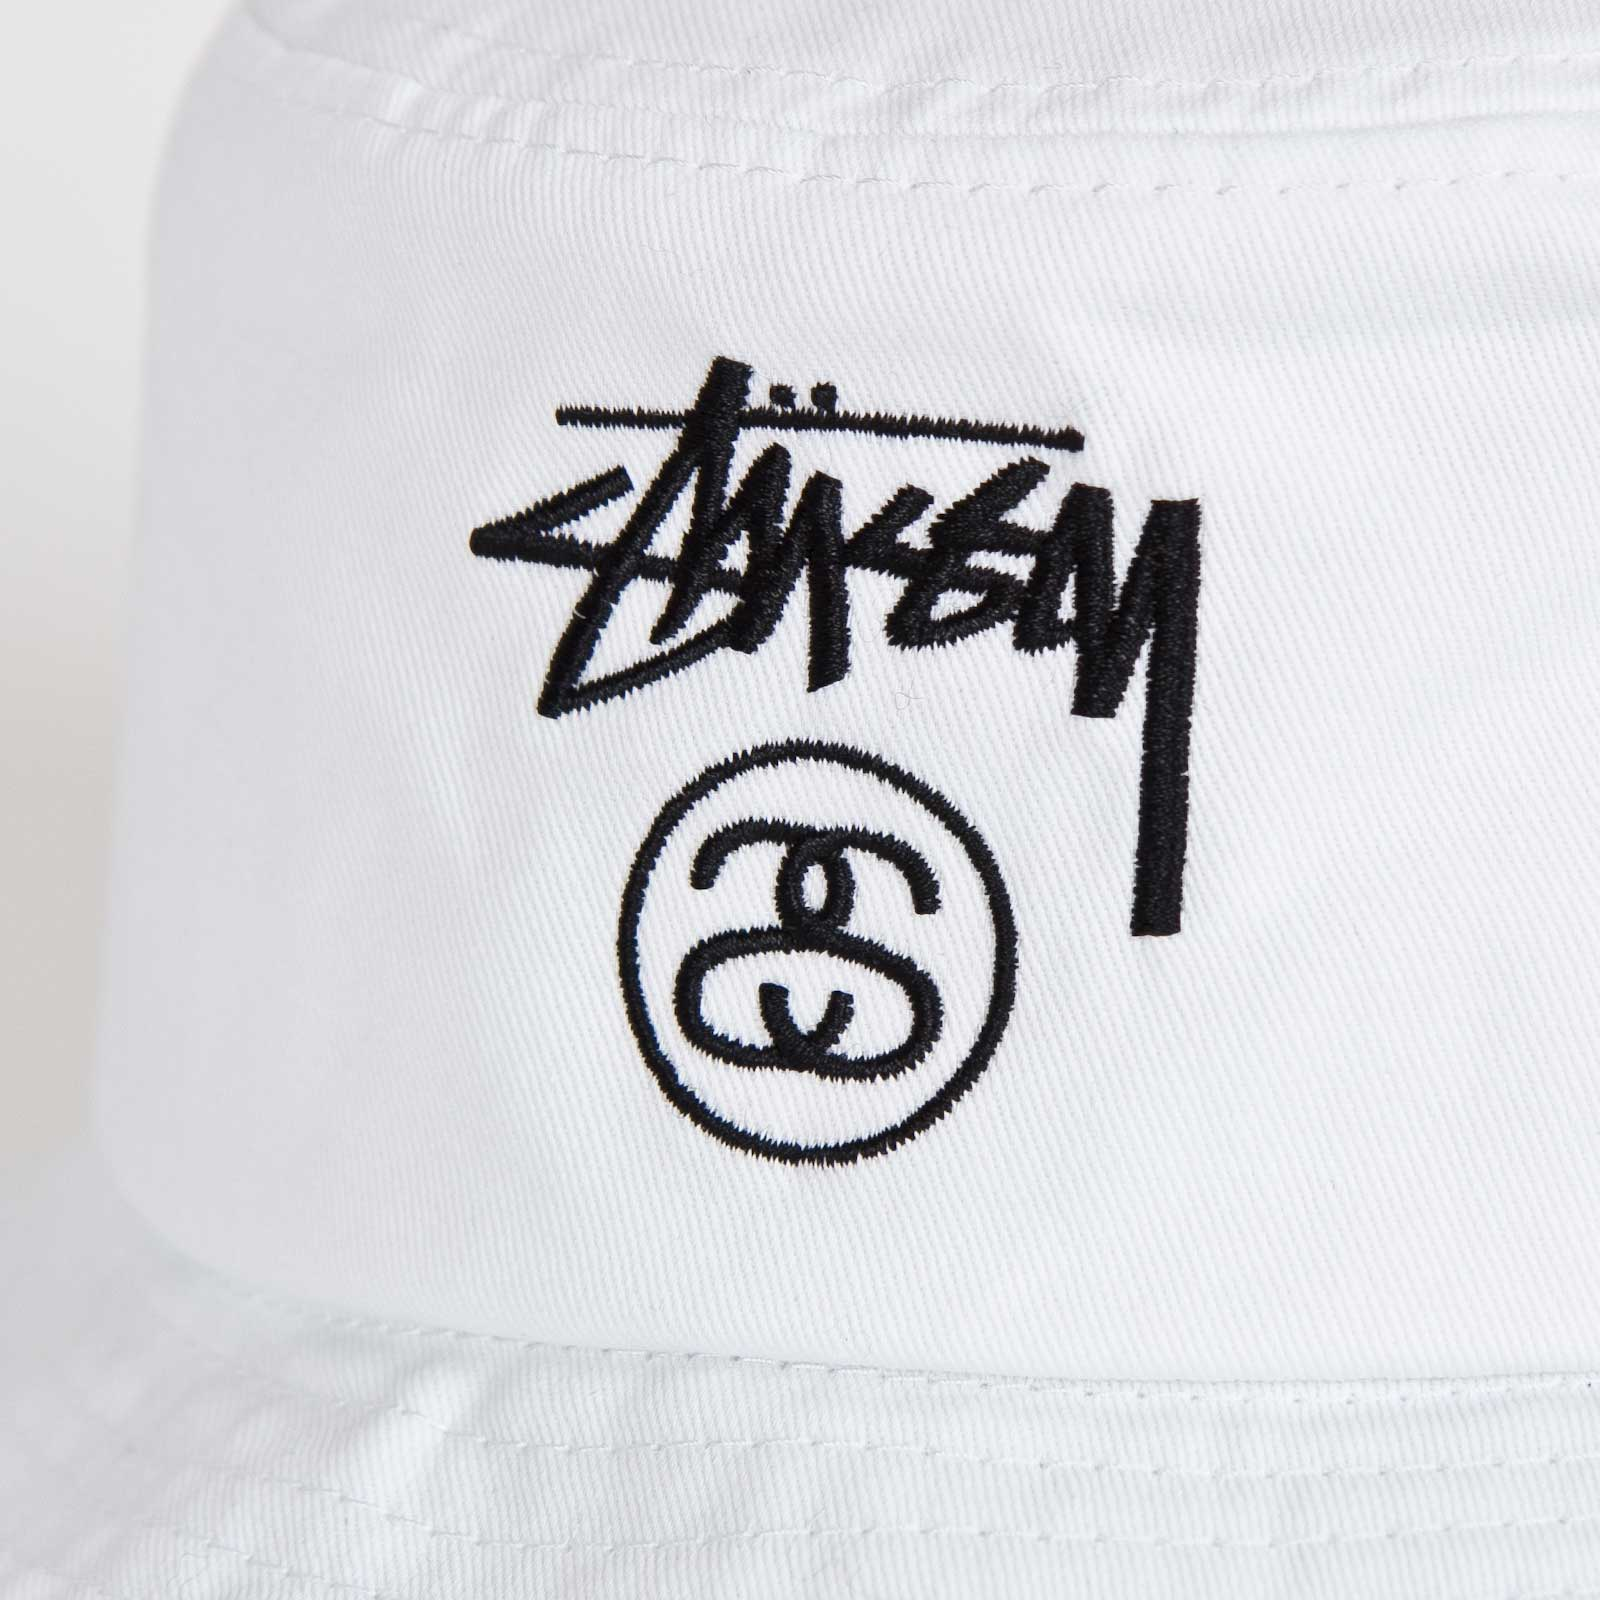 2d9056fd30e Stussy Stock Lock FA14 Bucket Hat - 132589-1201 - Sneakersnstuff ...